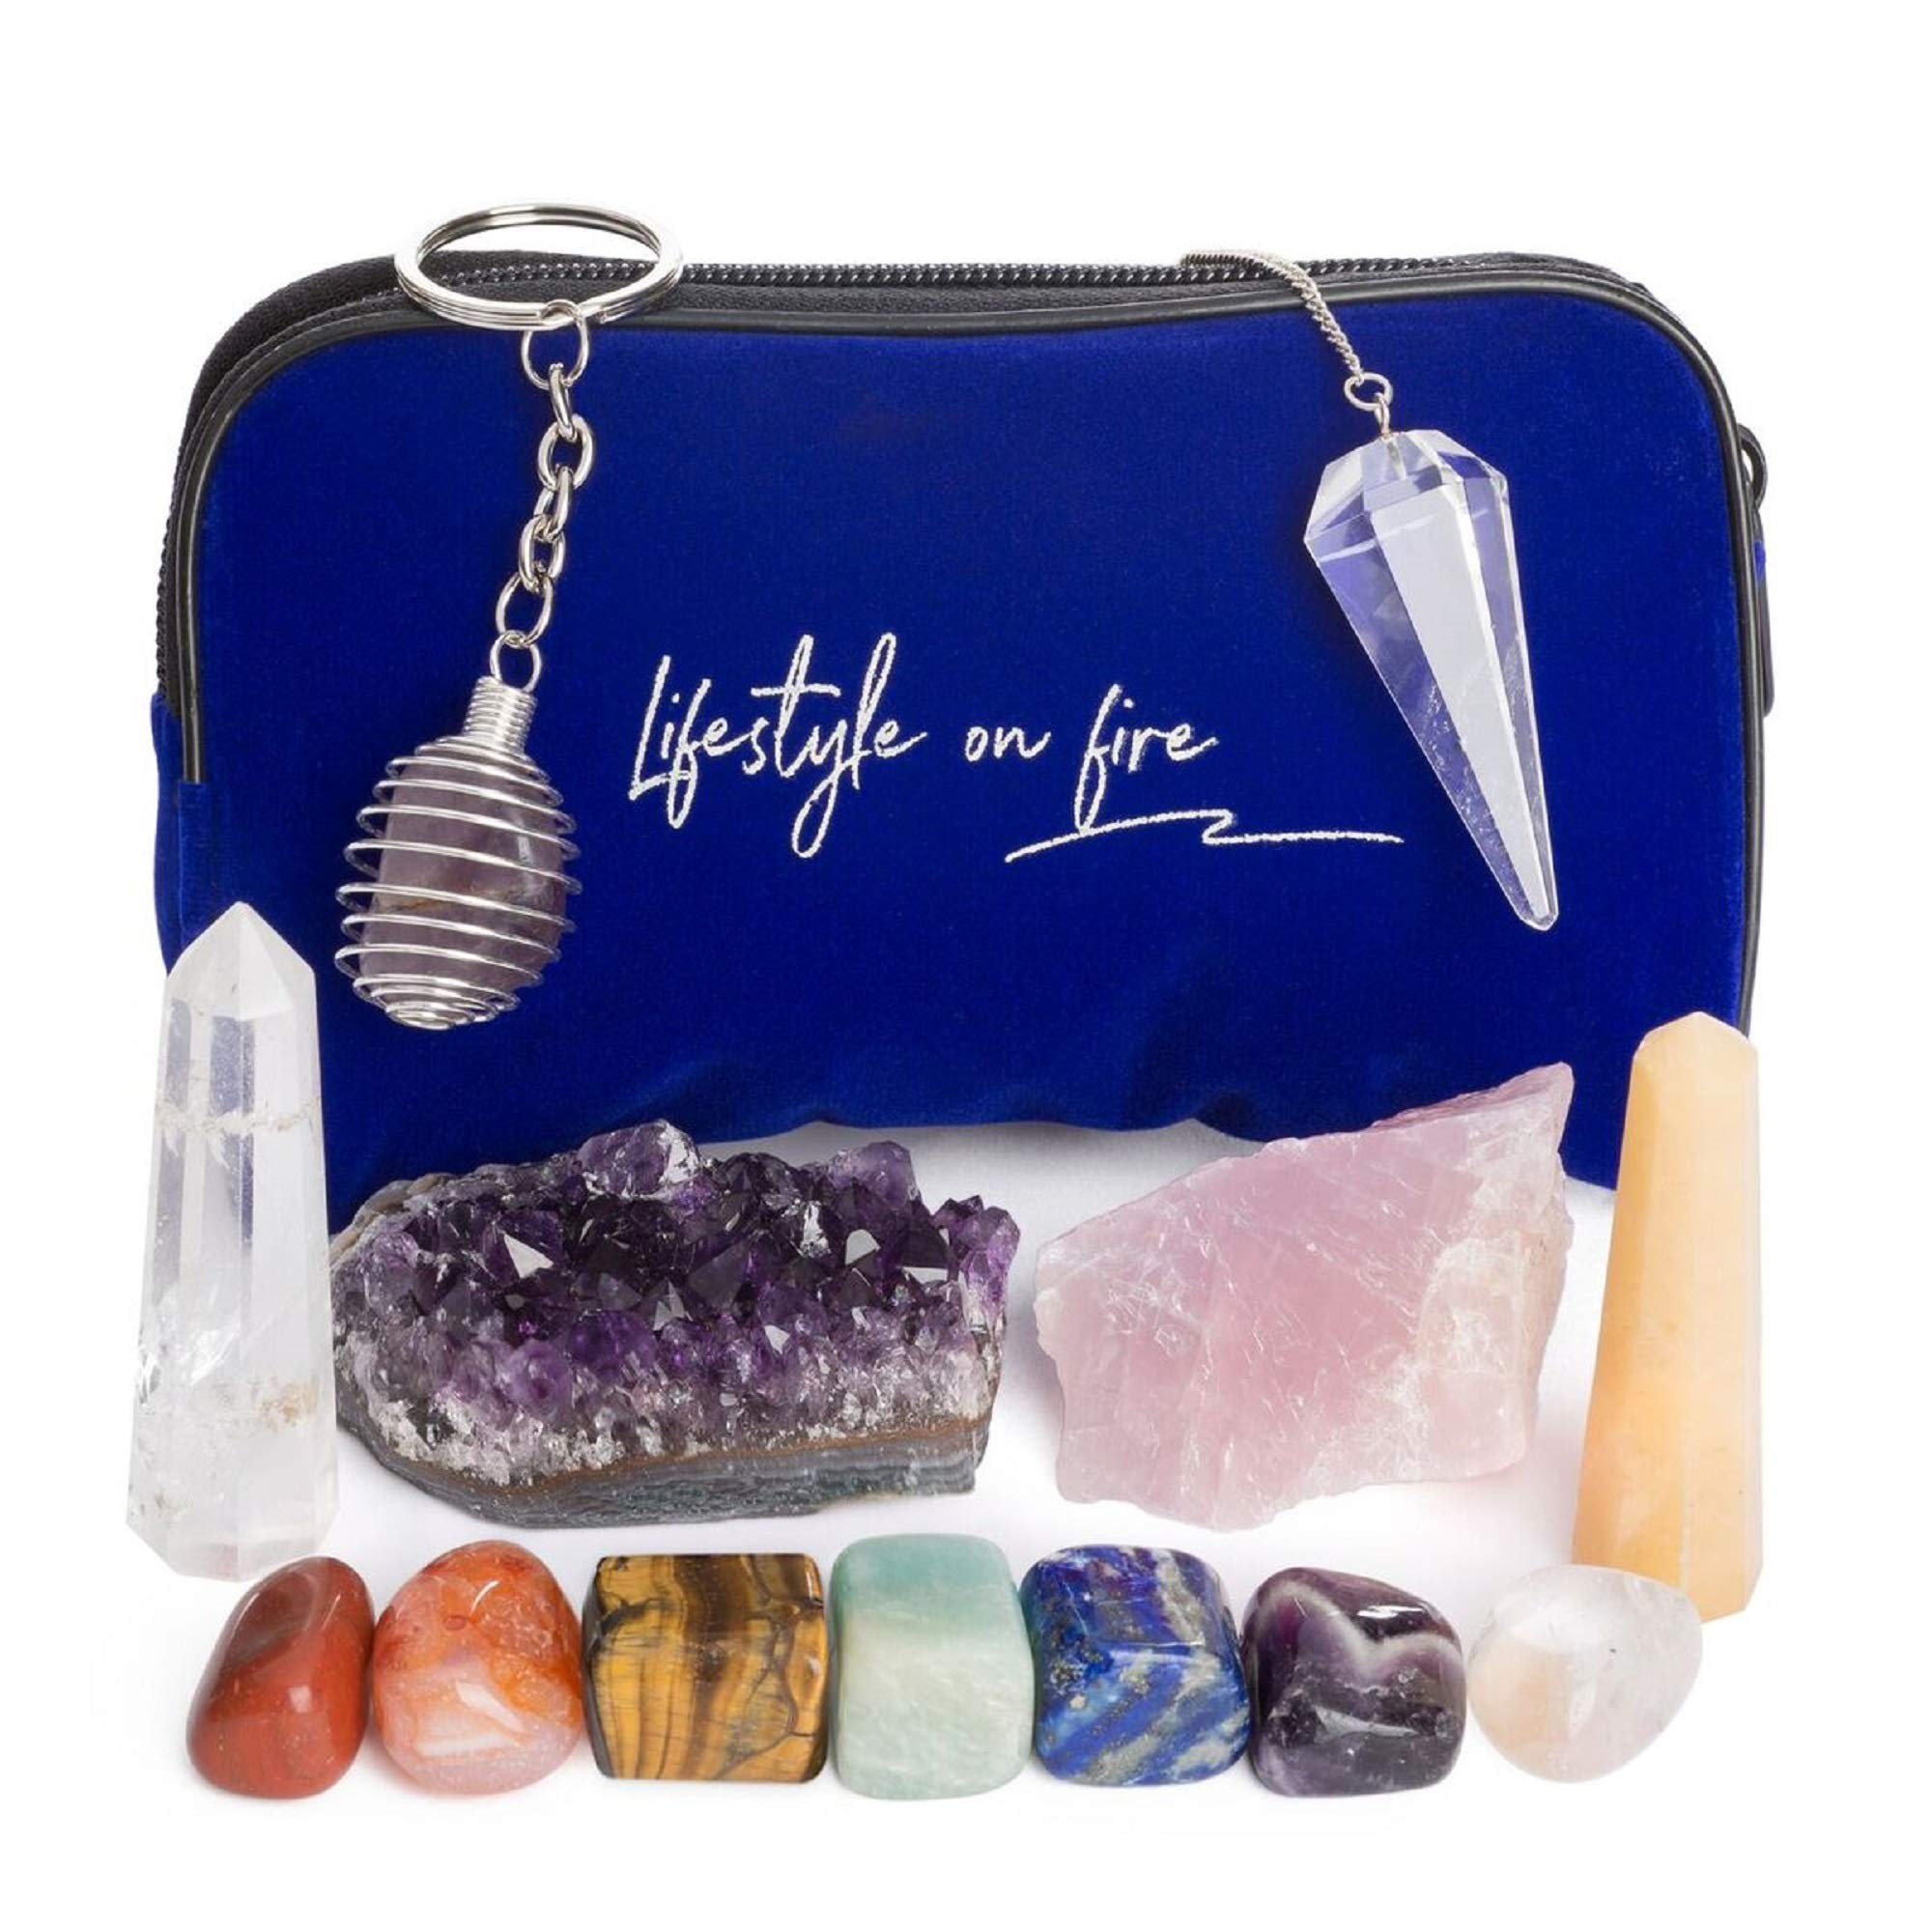 Natural Chakra Stones Set w/ Amethyst Crystal, Rose Quartz, Lapis Lazuli, Clear Quartz Obelisk & Tiger Eye – Chakra Crystals for Reiki, Meditation & Massage – Ebook, Velvet Pouch & Keychain Included! by Lifestyle on Fire